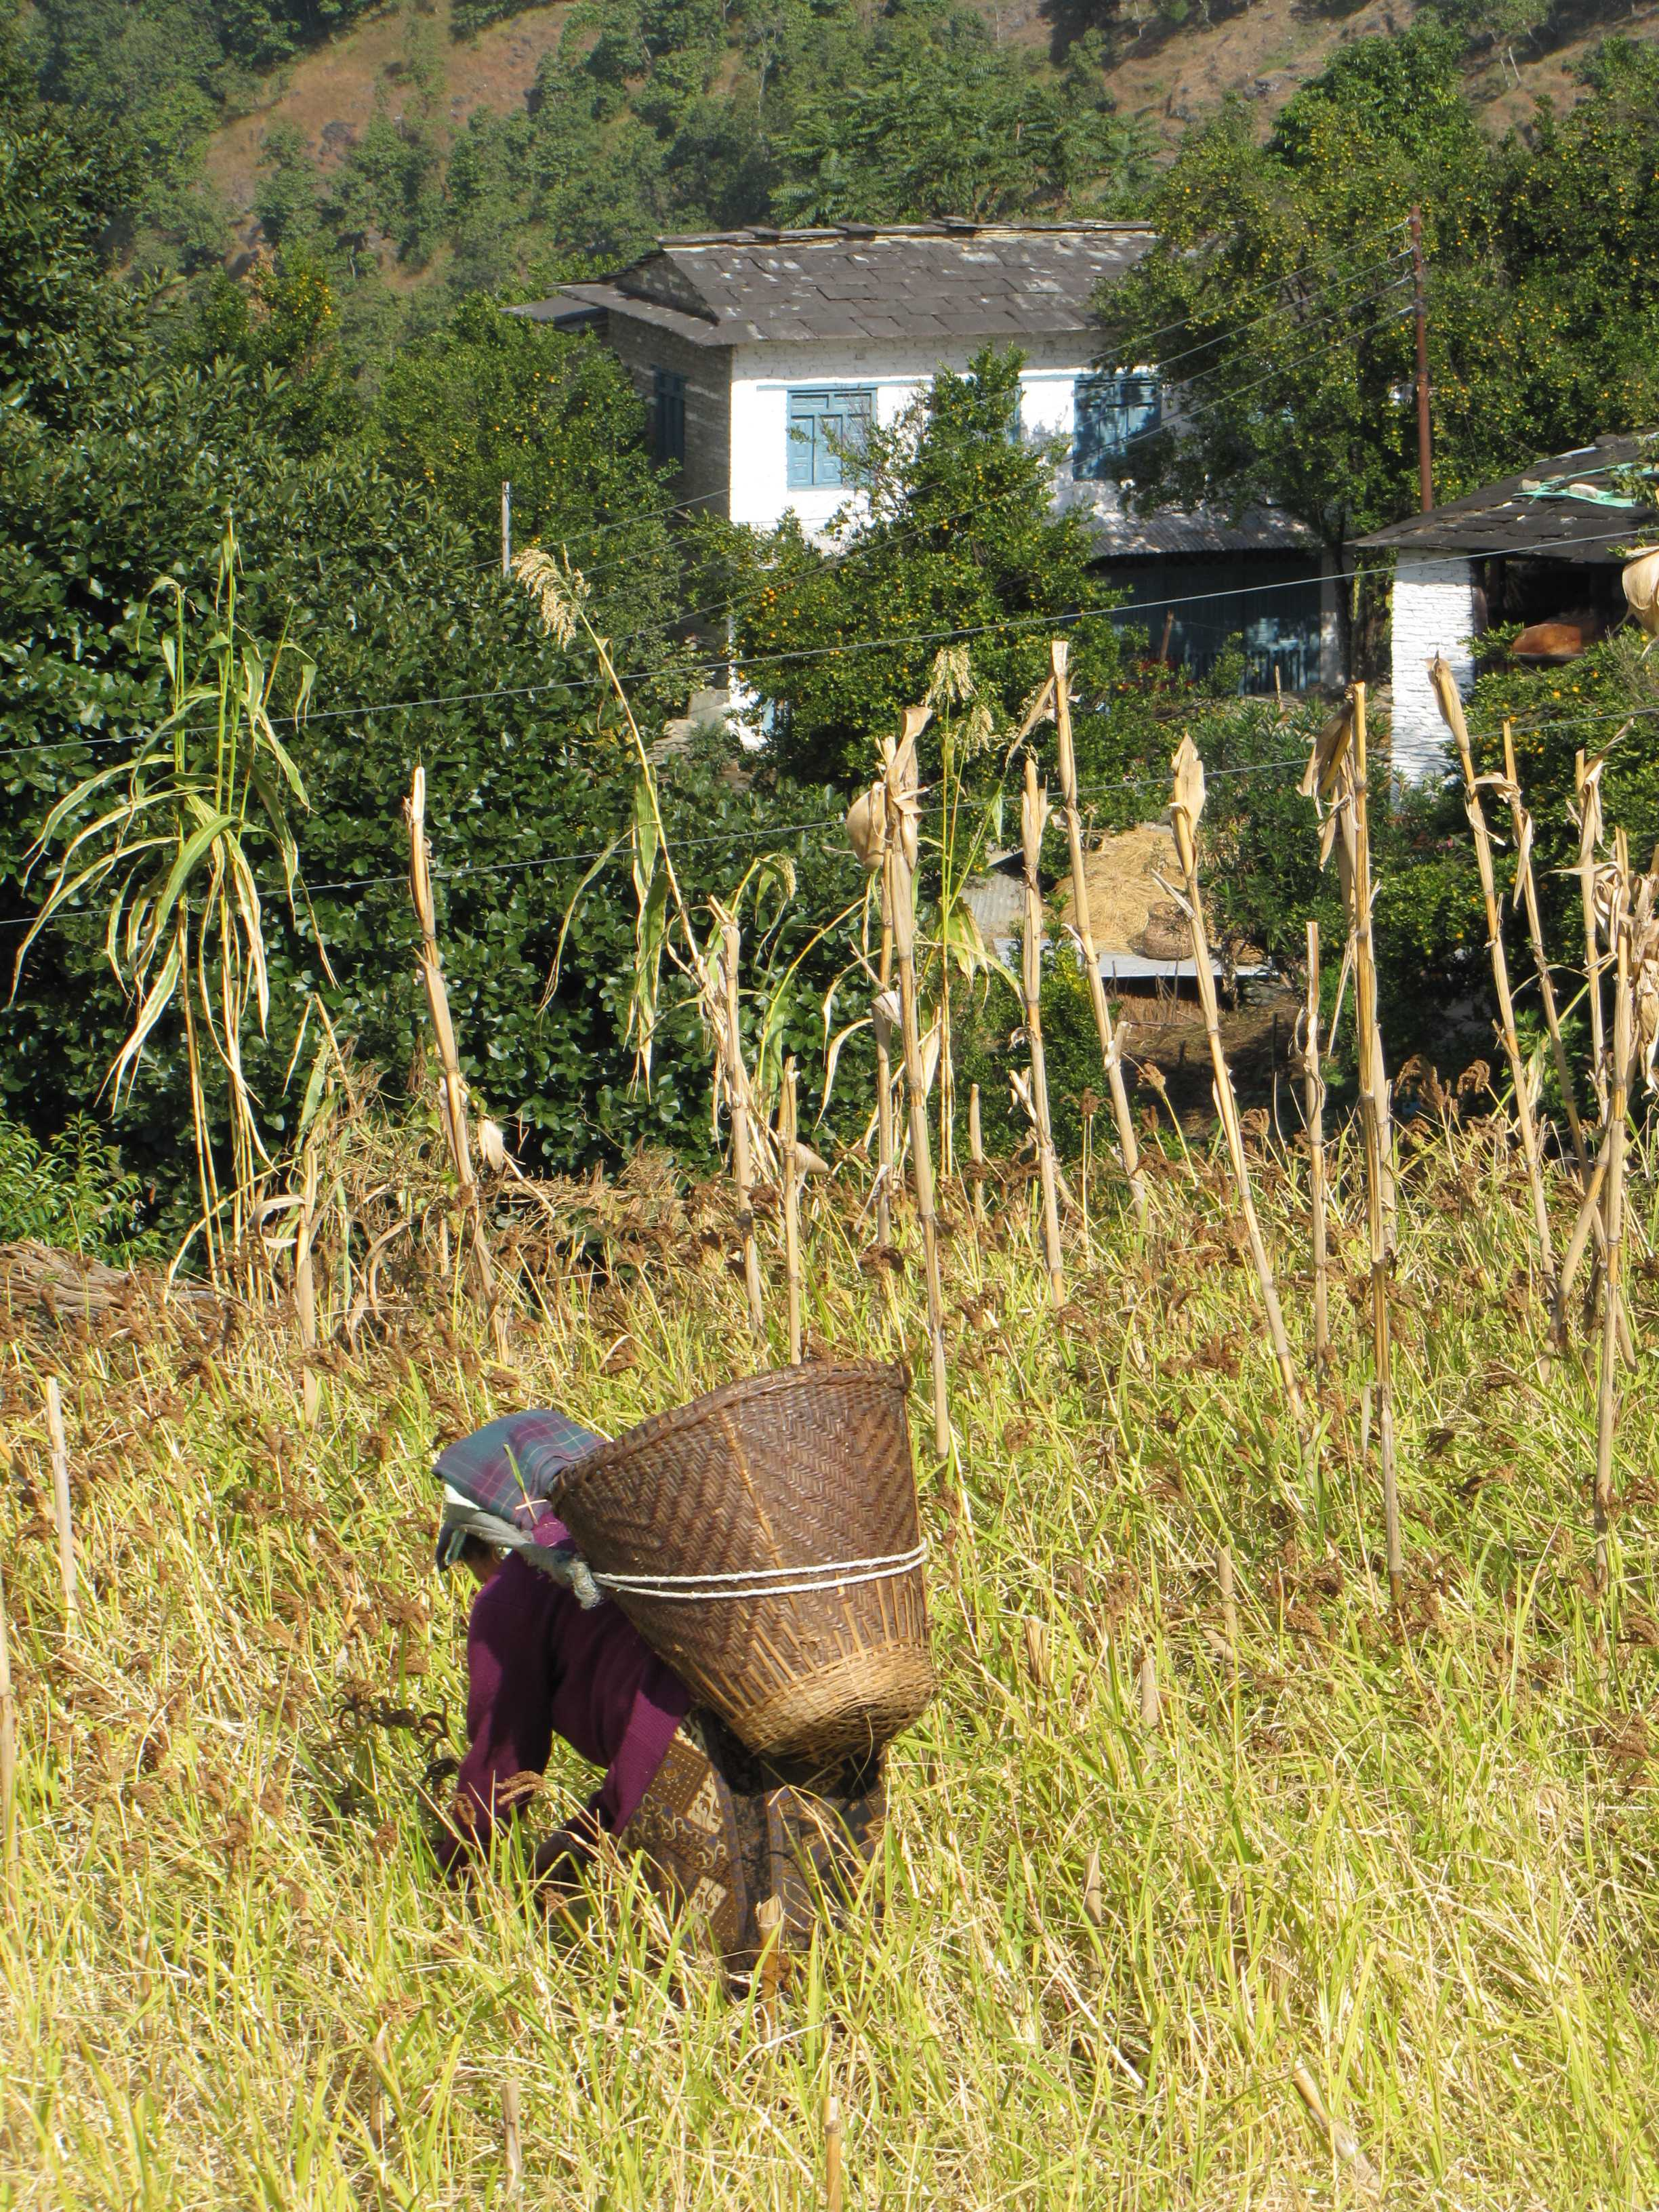 A villager working in field, a scene common through the Annapurna Community Trek